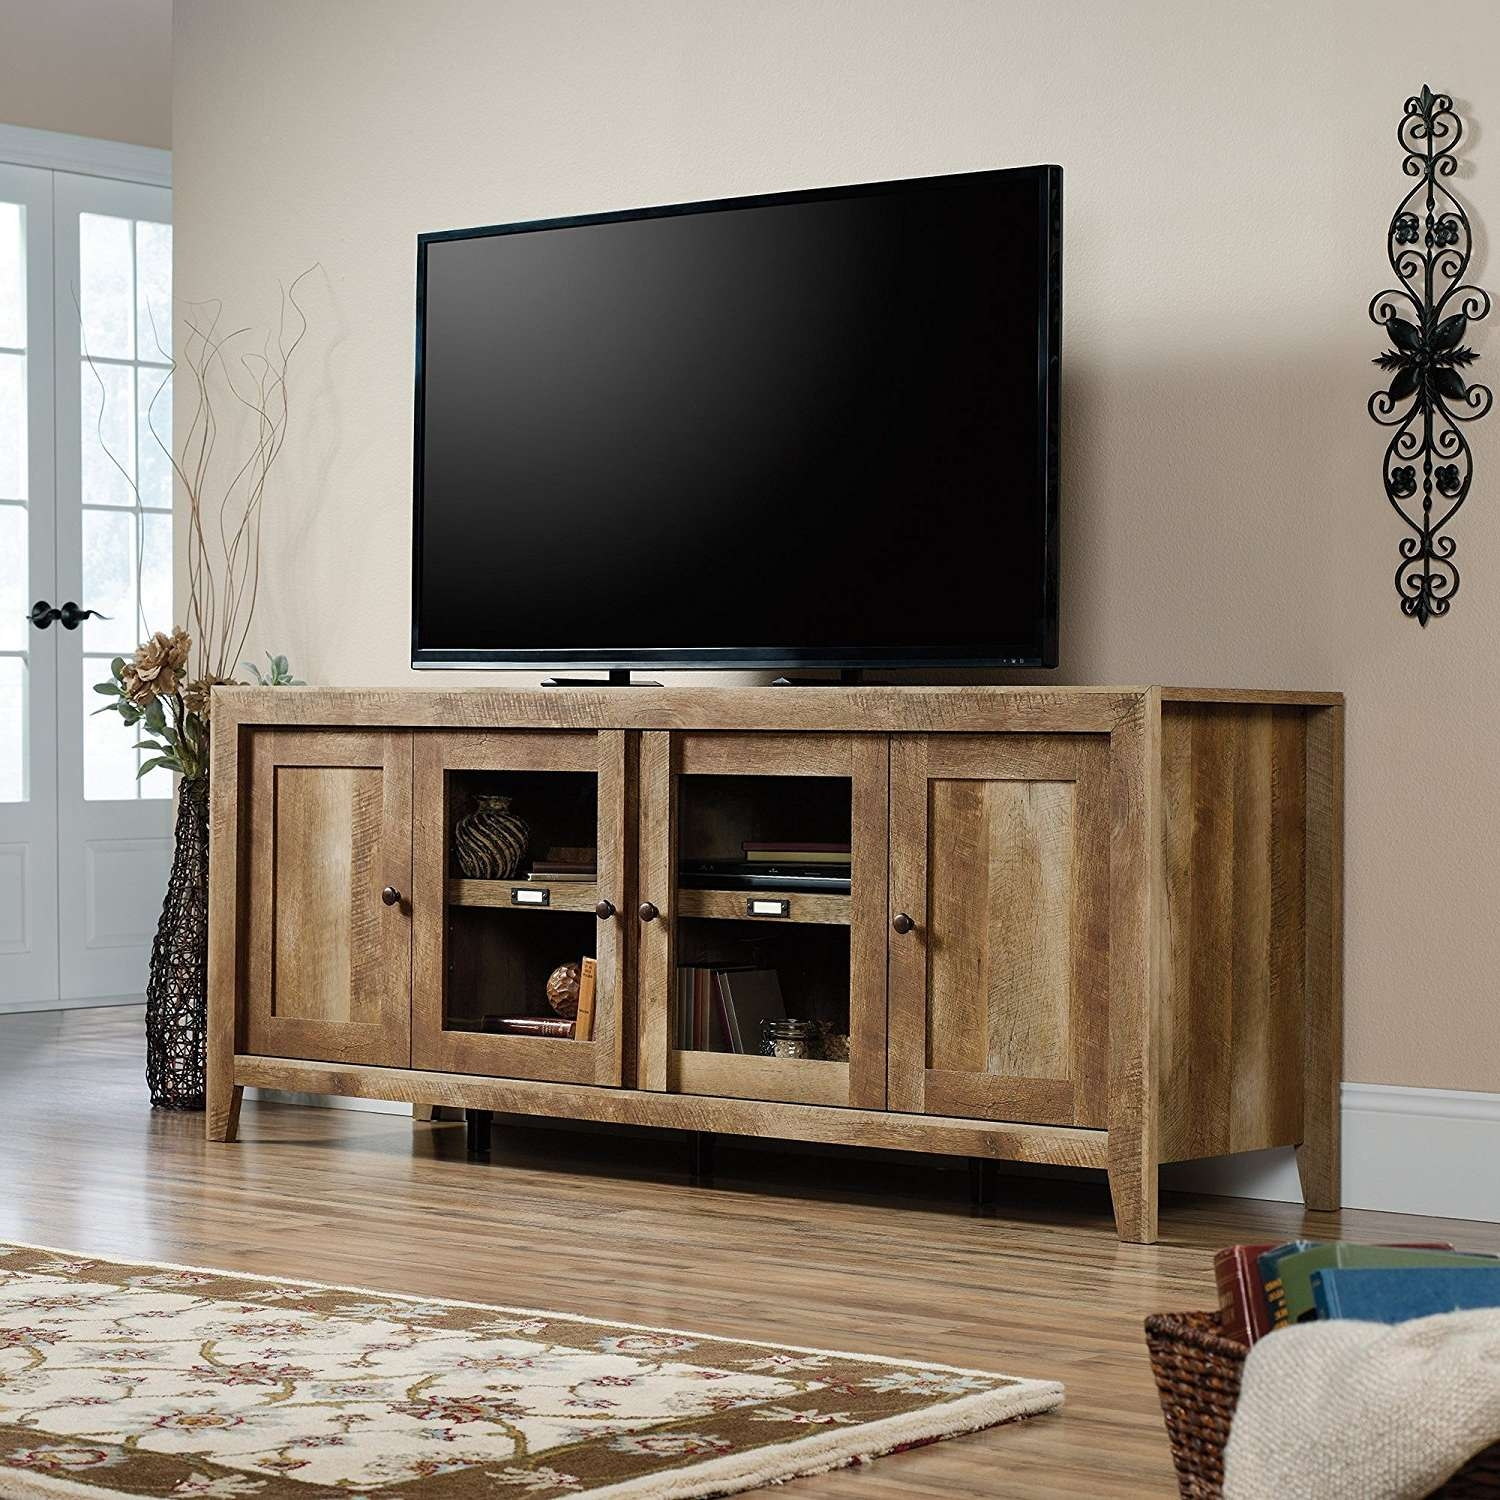 Widely Used Matching Tv Unit And Coffee Tables Regarding Matching Coffee Table And Tv Stand – Vtsi (View 19 of 20)